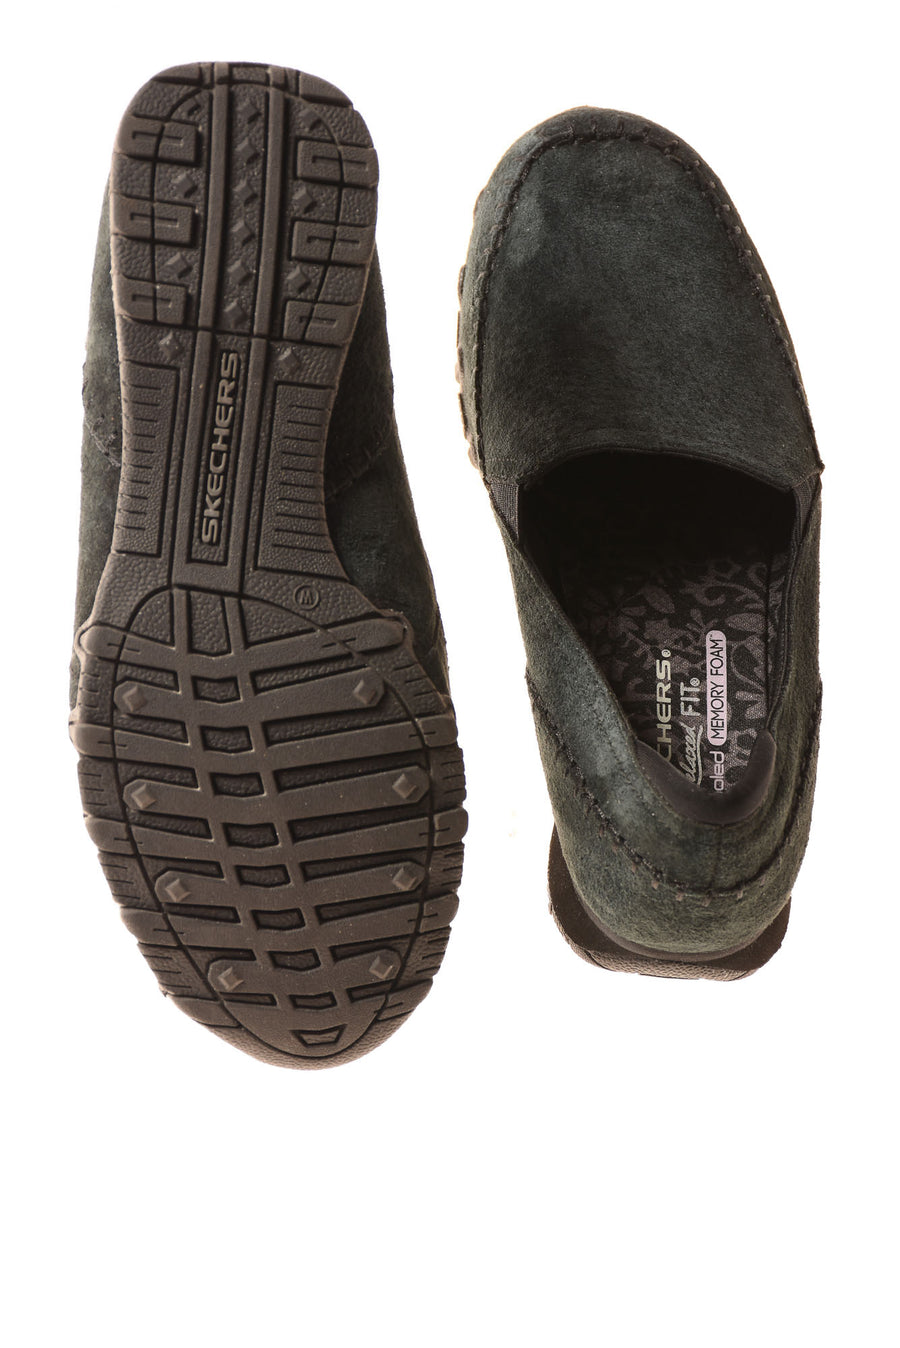 Women's Shoes By Skechers